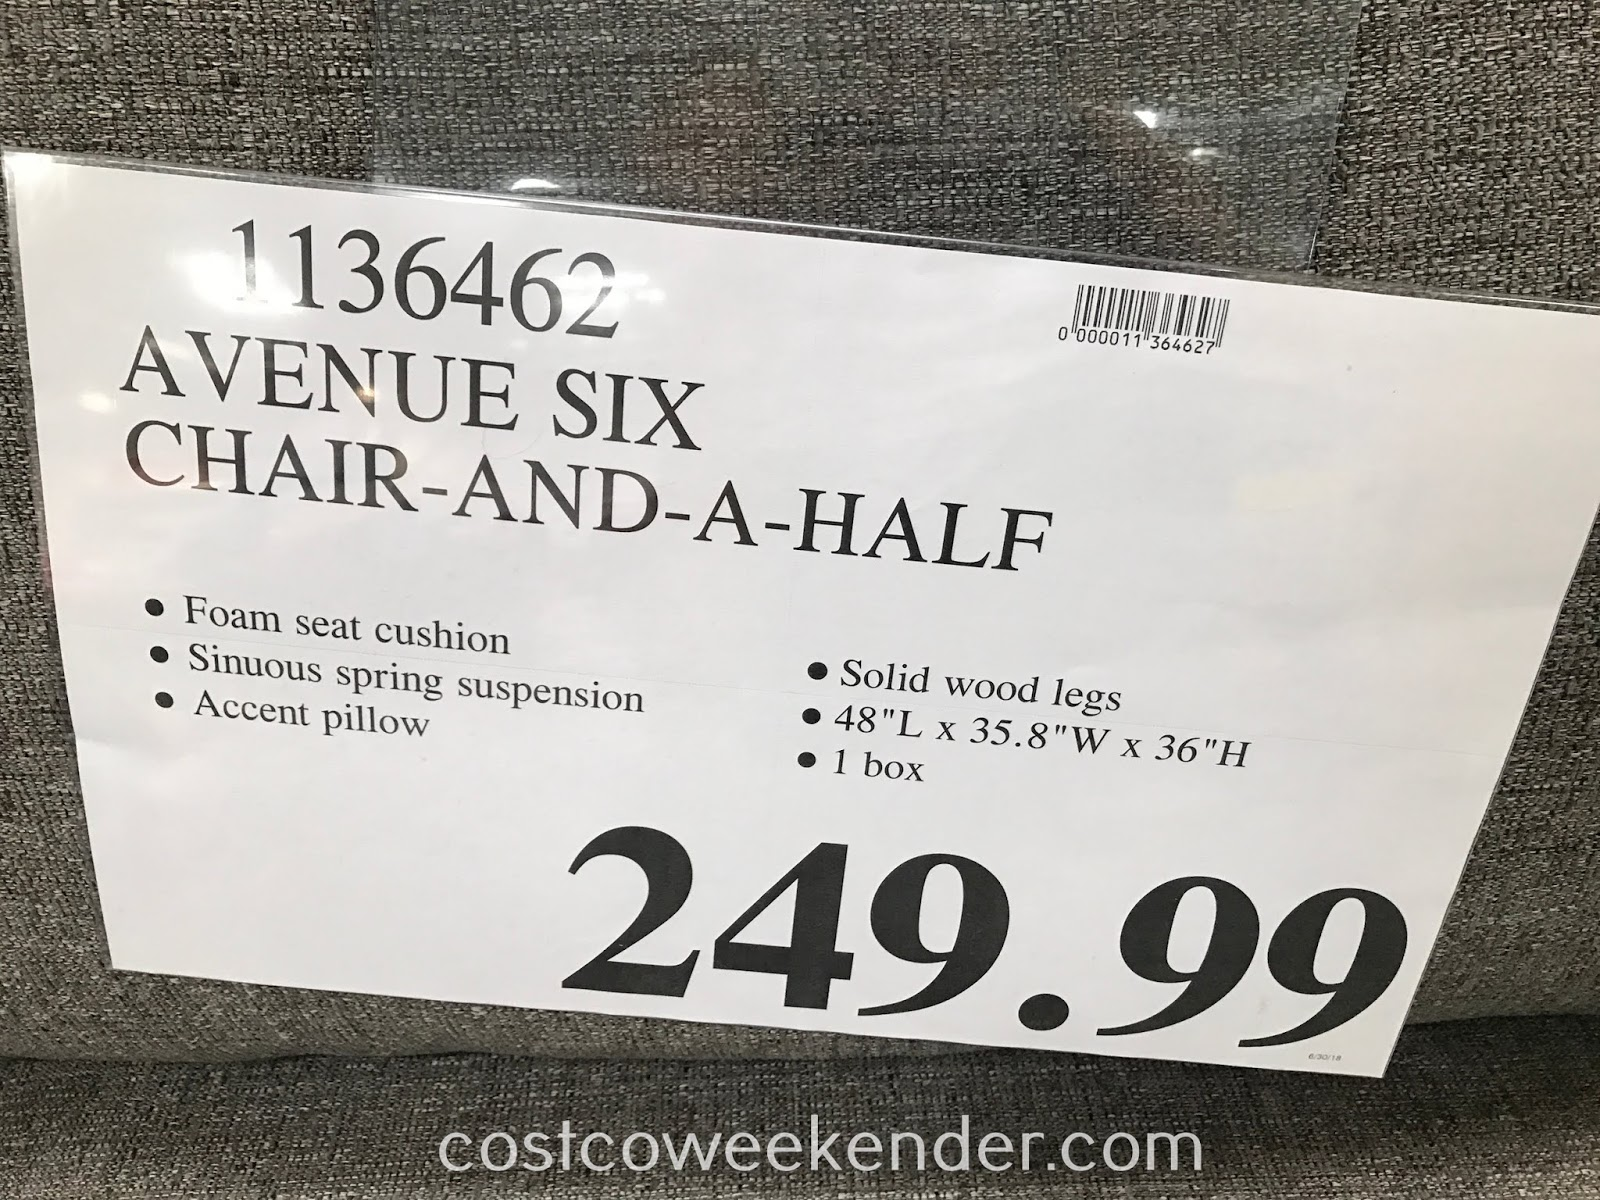 Deal for the Avenue Six Fabric Chair and a Half at Costco